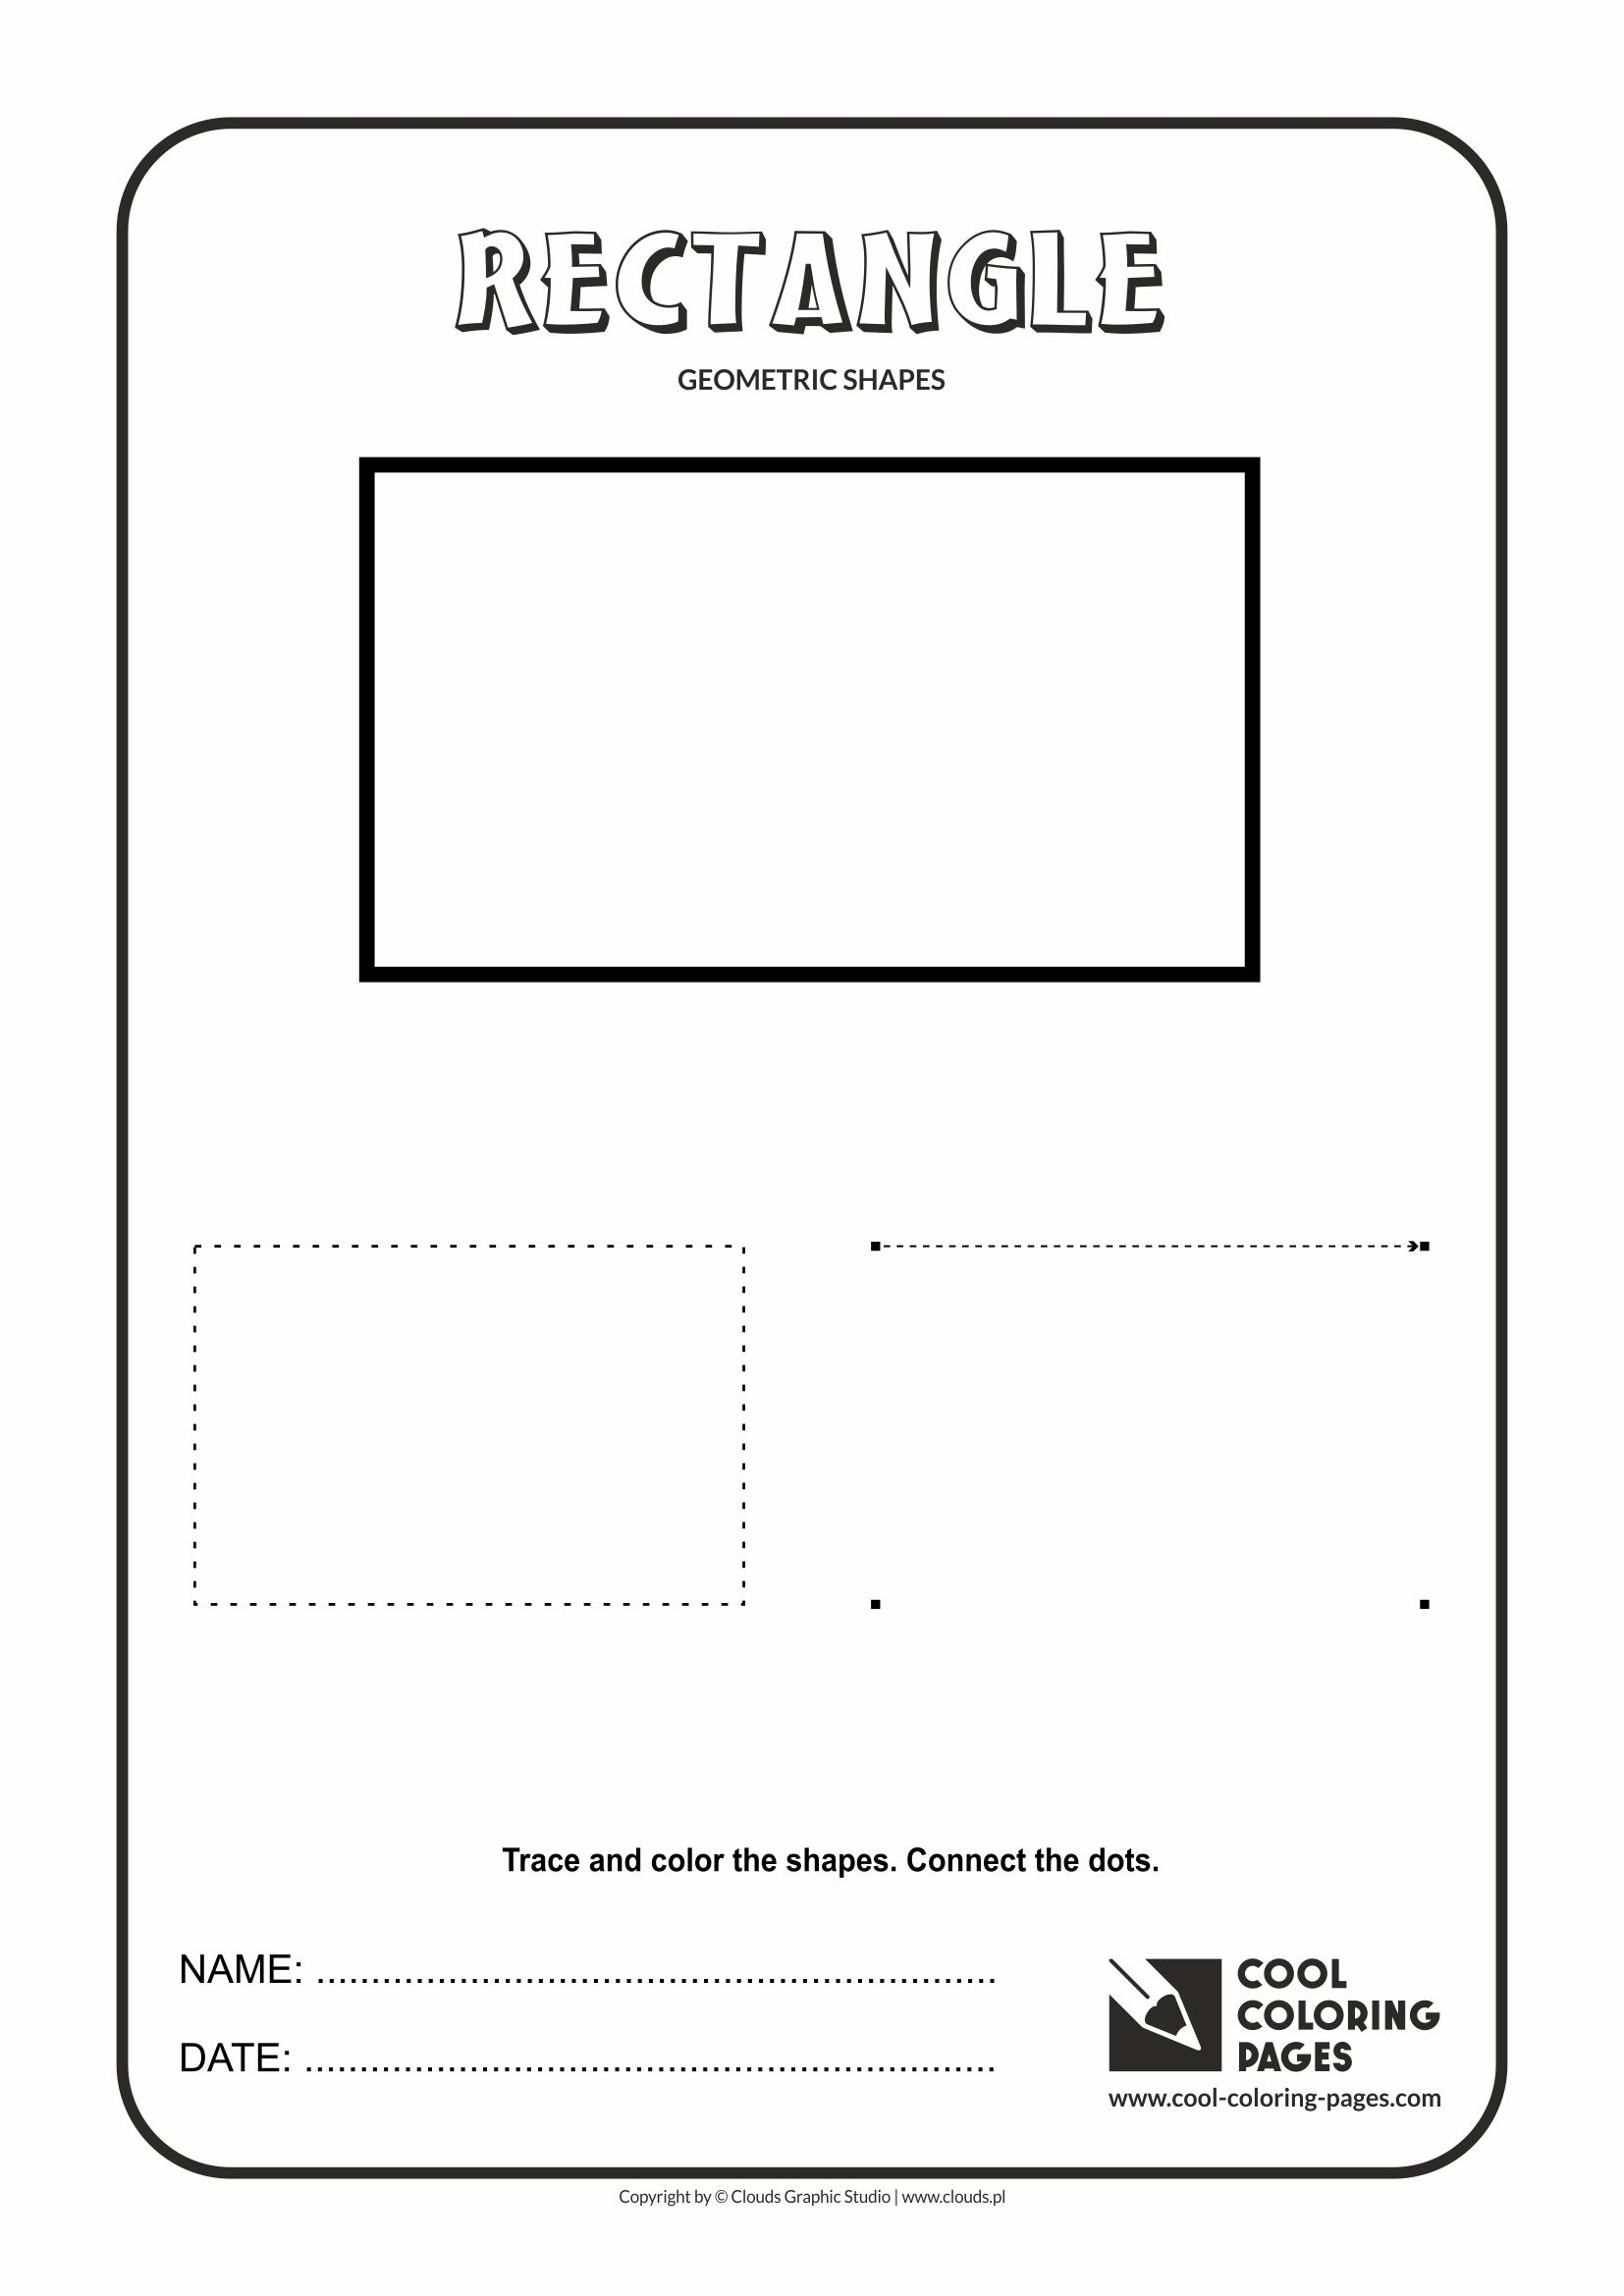 Cool Coloring Pages - Geometric shapes / Rectangle